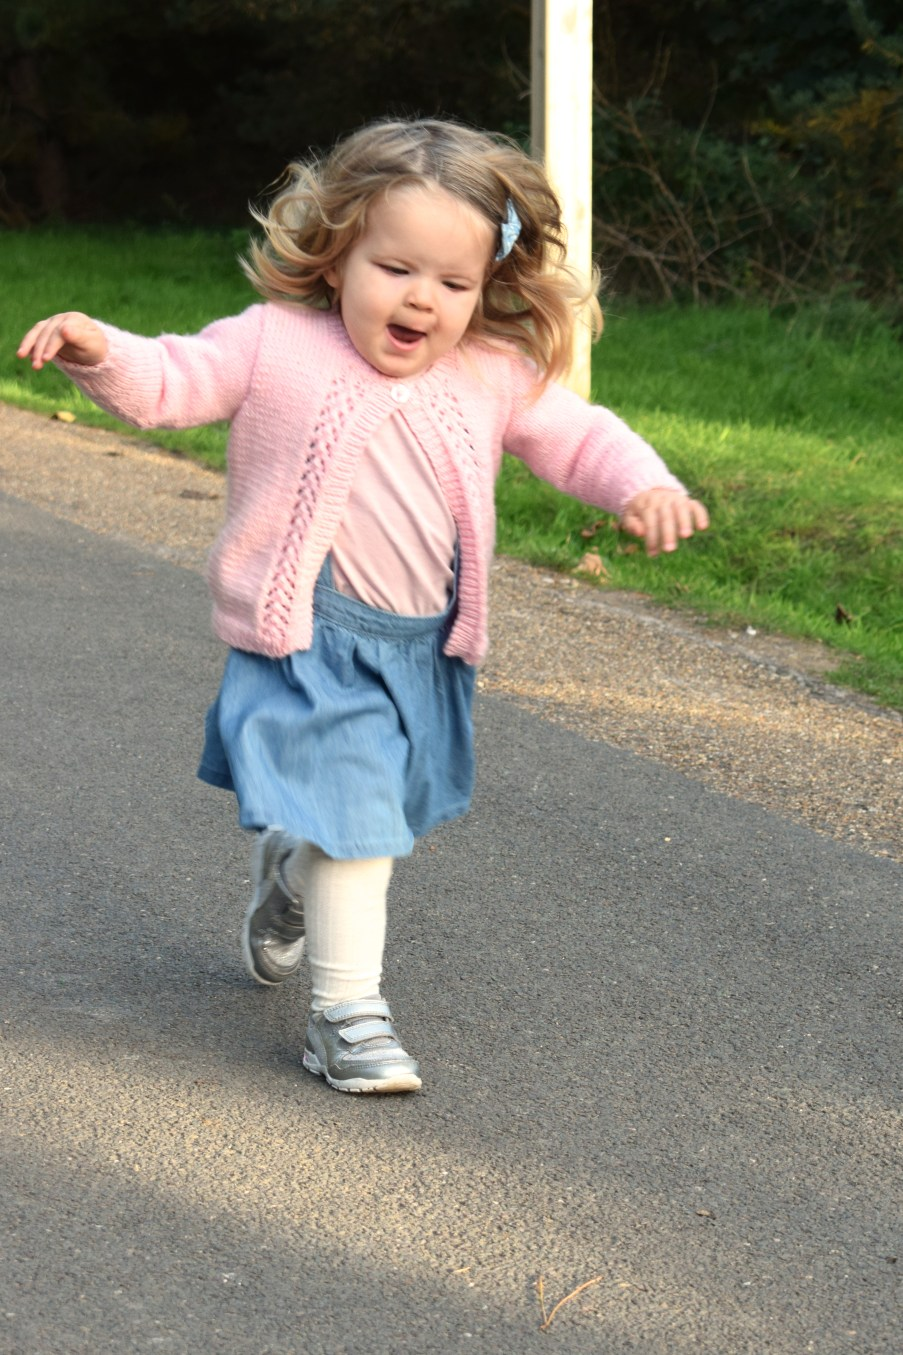 two and a half year old girl running down a path with arms outstretched, smiling, in pink cardigan and blue dress